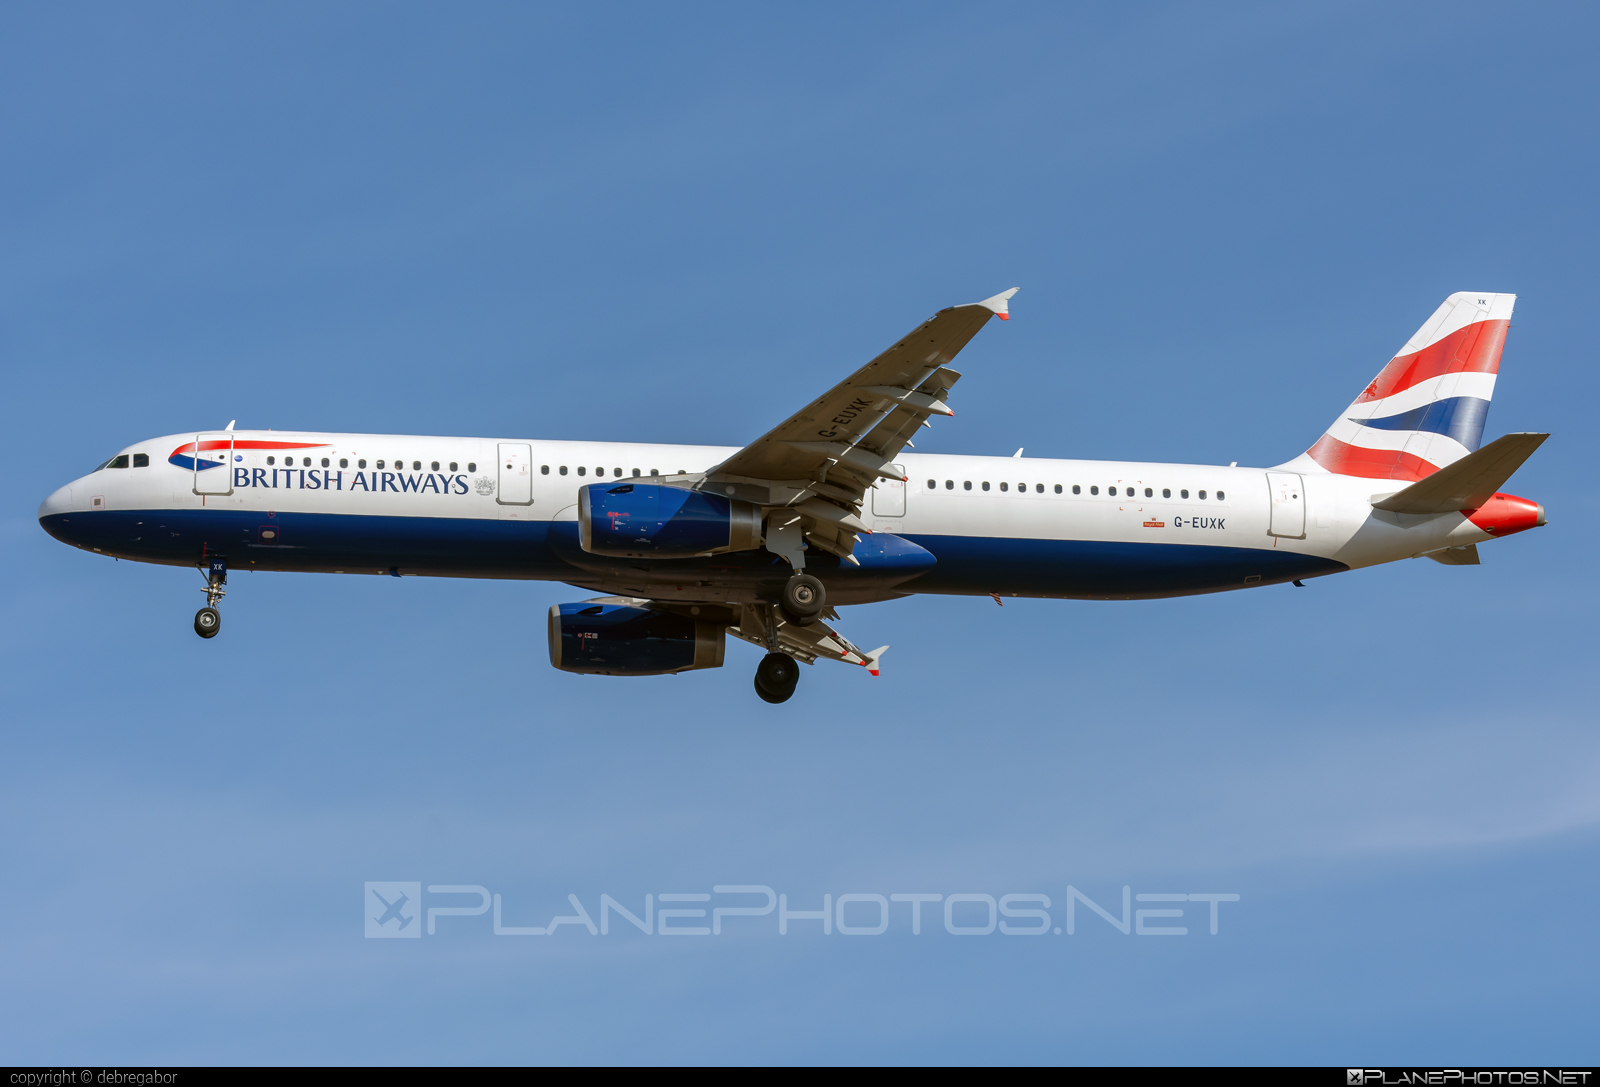 Airbus A321-231 - G-EUXK operated by British Airways #a320family #a321 #airbus #airbus321 #britishairways